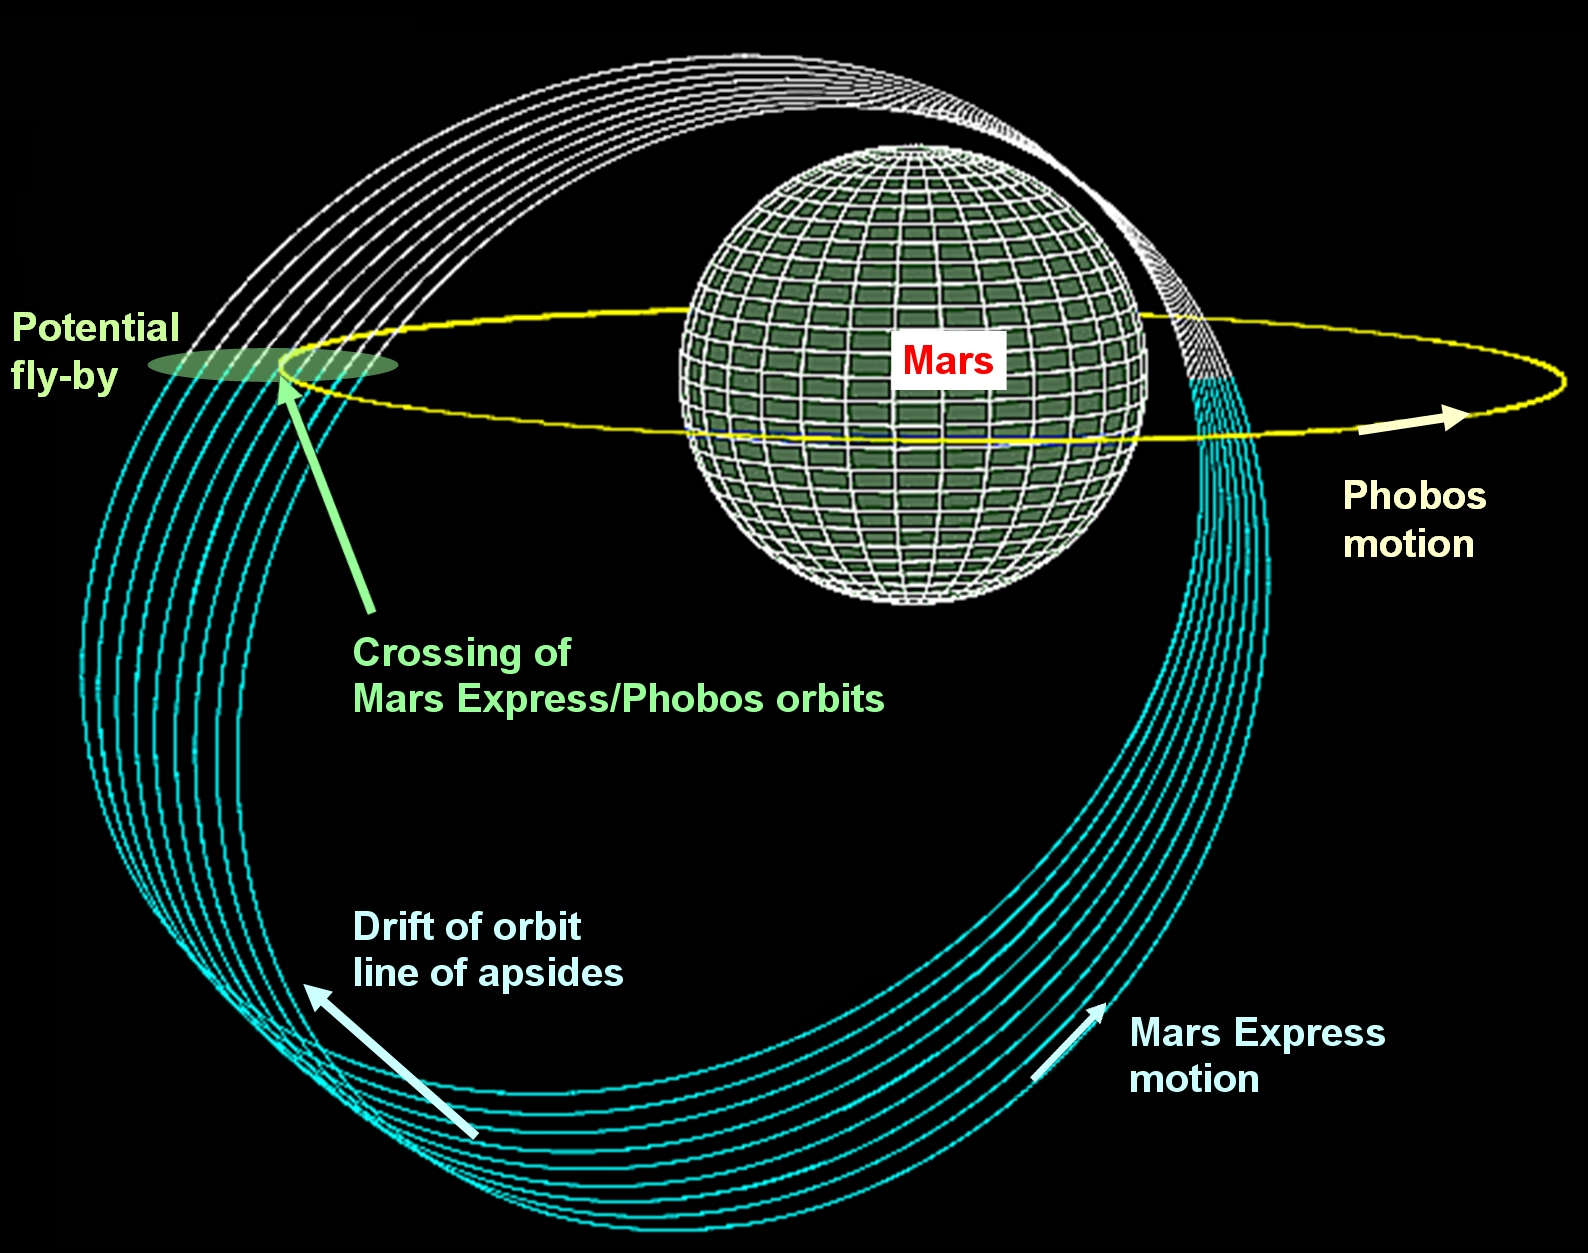 ESA Science & Technology: Crossing of the Mars Express and ...